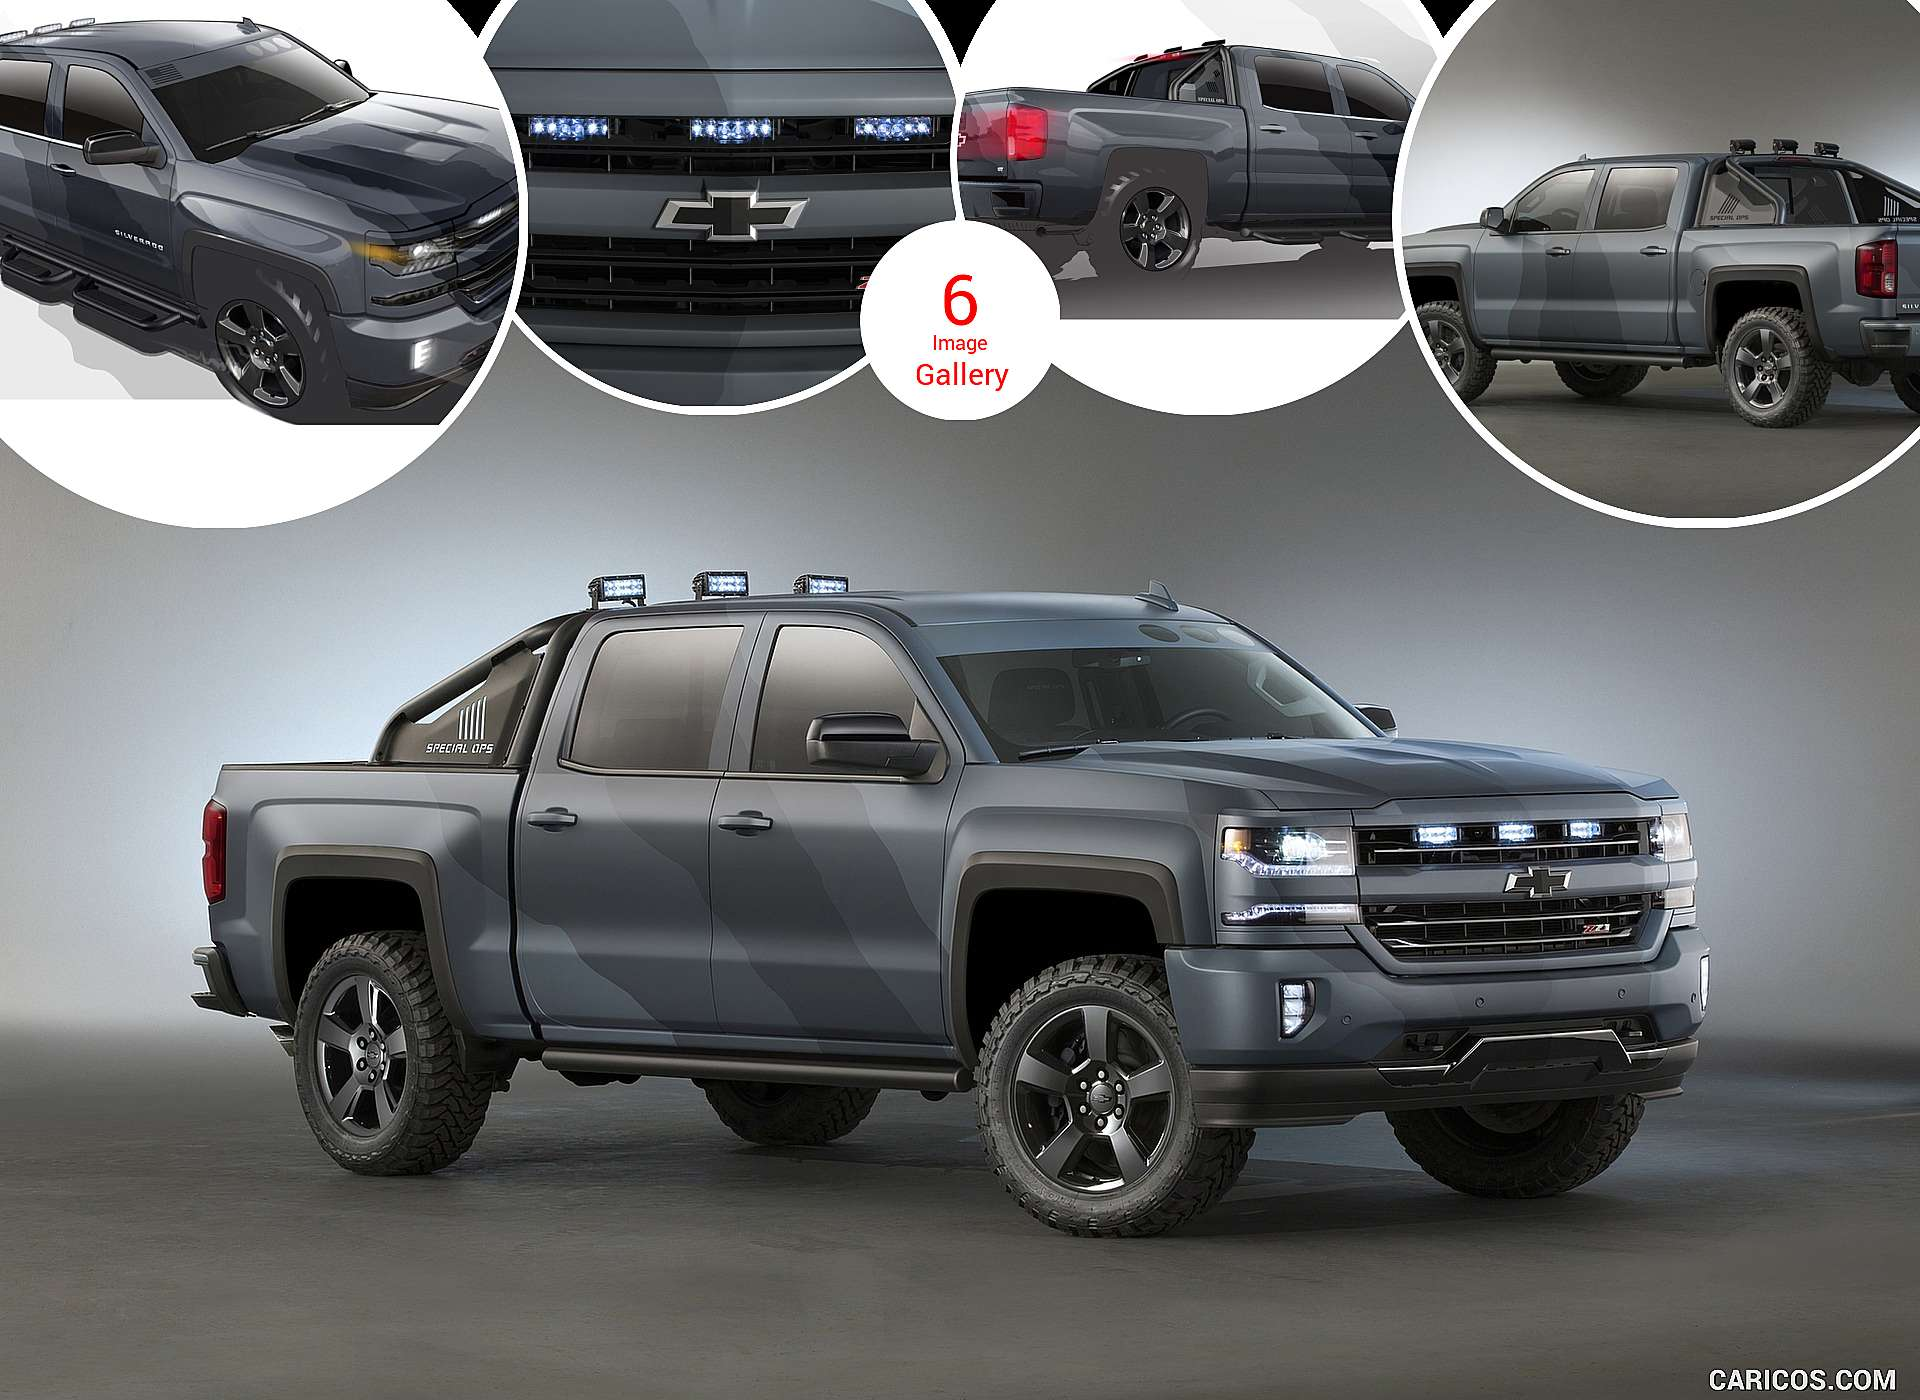 at faces lt of gallery news restaurant silverado photo new chevrolet image reveals